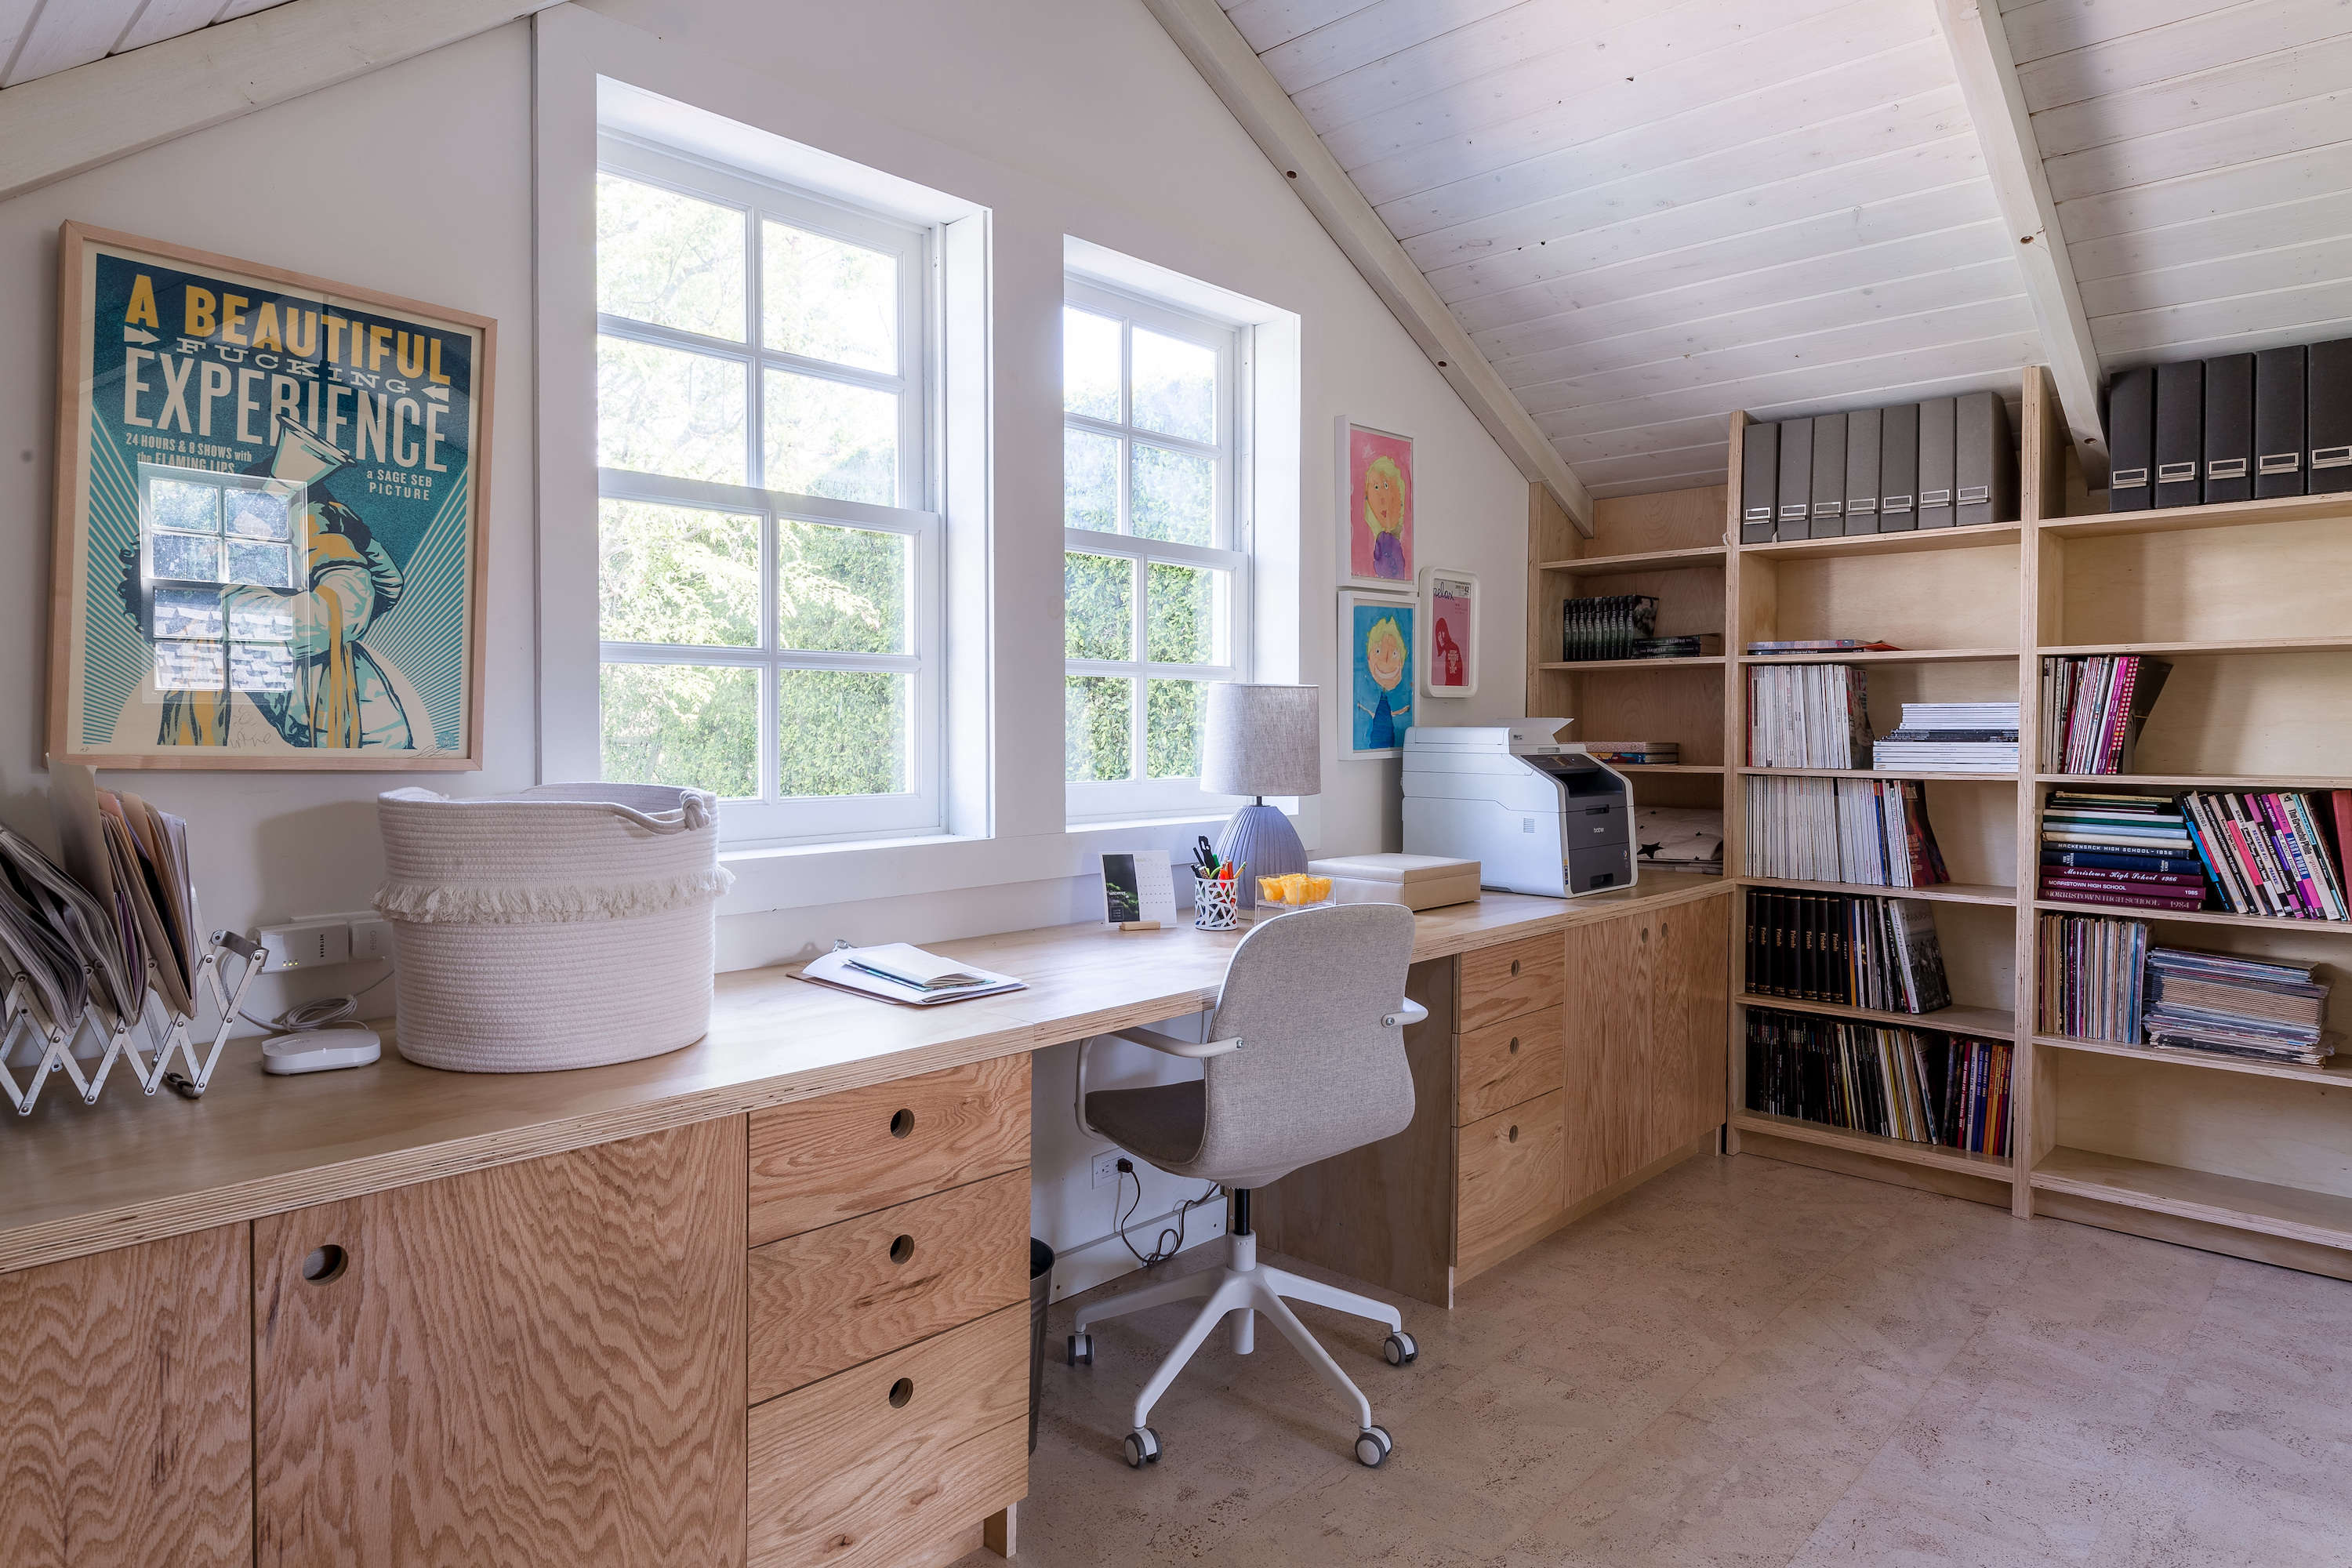 Christine Lennon Guest Barn Home Office, Image by Stephen Paul and Paul Anderson